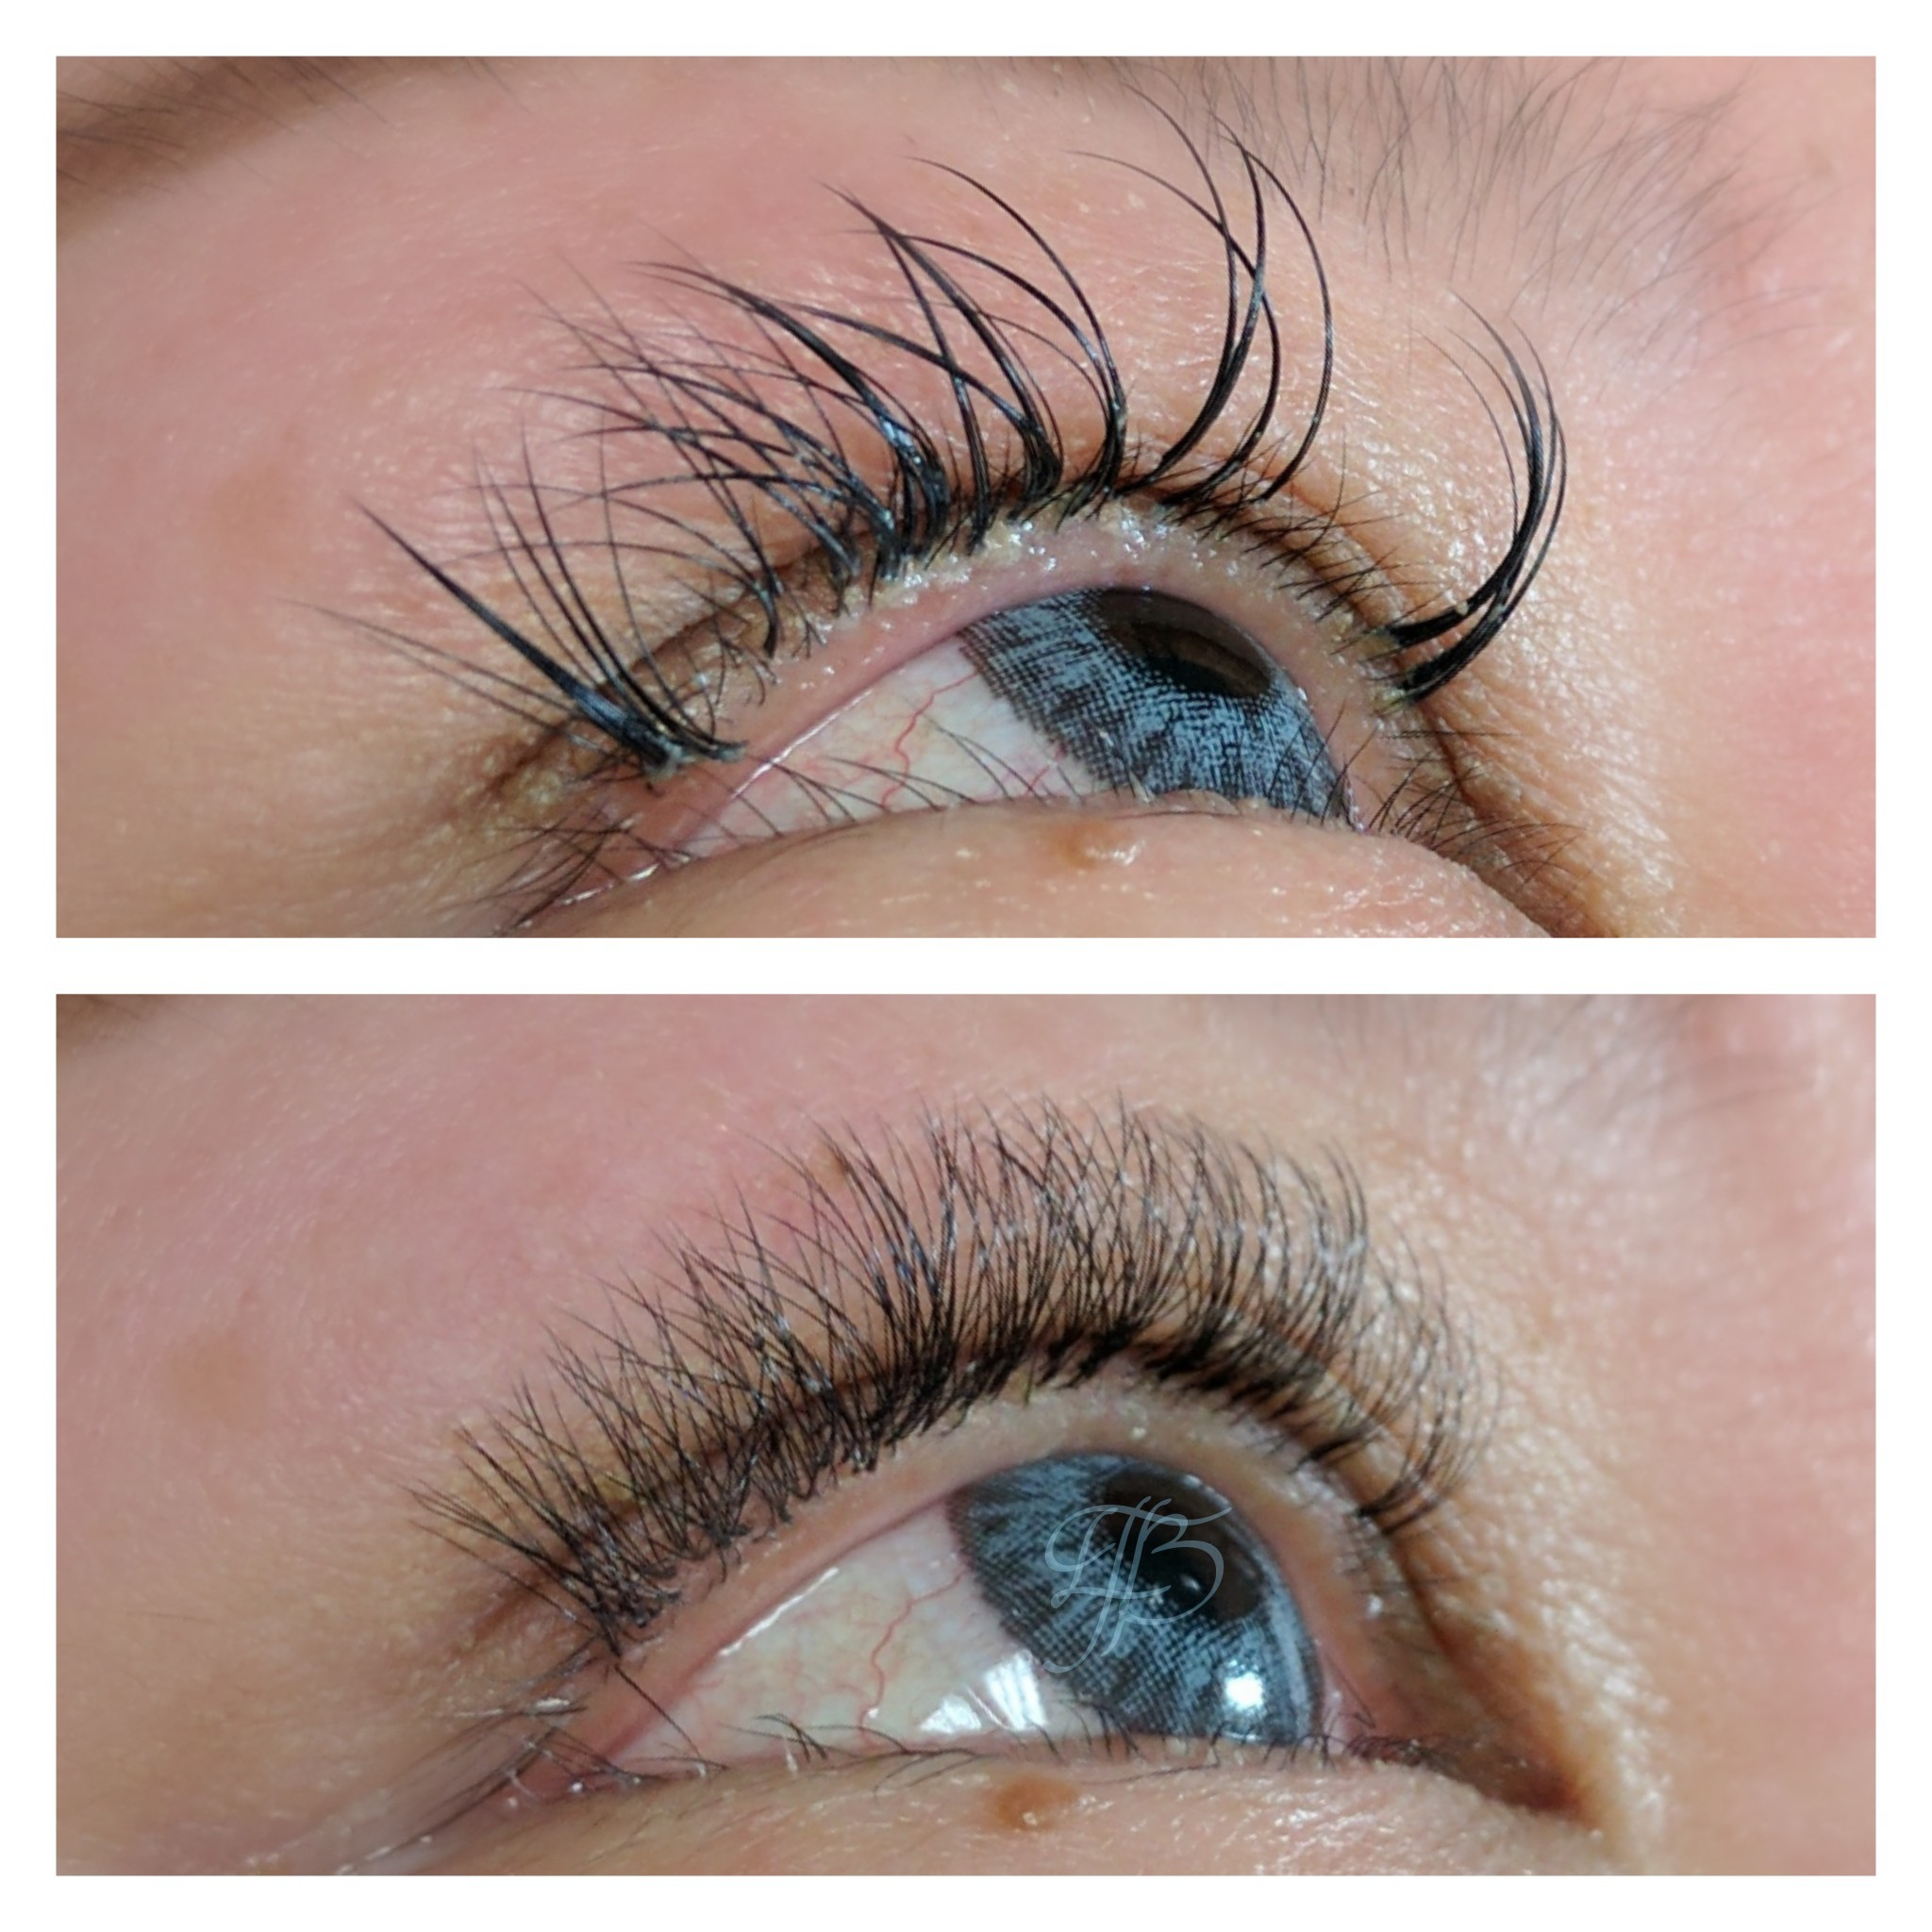 before:  very heavy, long volume lash extensions by another artist, extreme oil buildup & closed fans from lack of cleansing   after:  Extension removal, deep lash line & lid cleansing, very light volume full set appropriate for guest's natural lash length & strength by The Studio